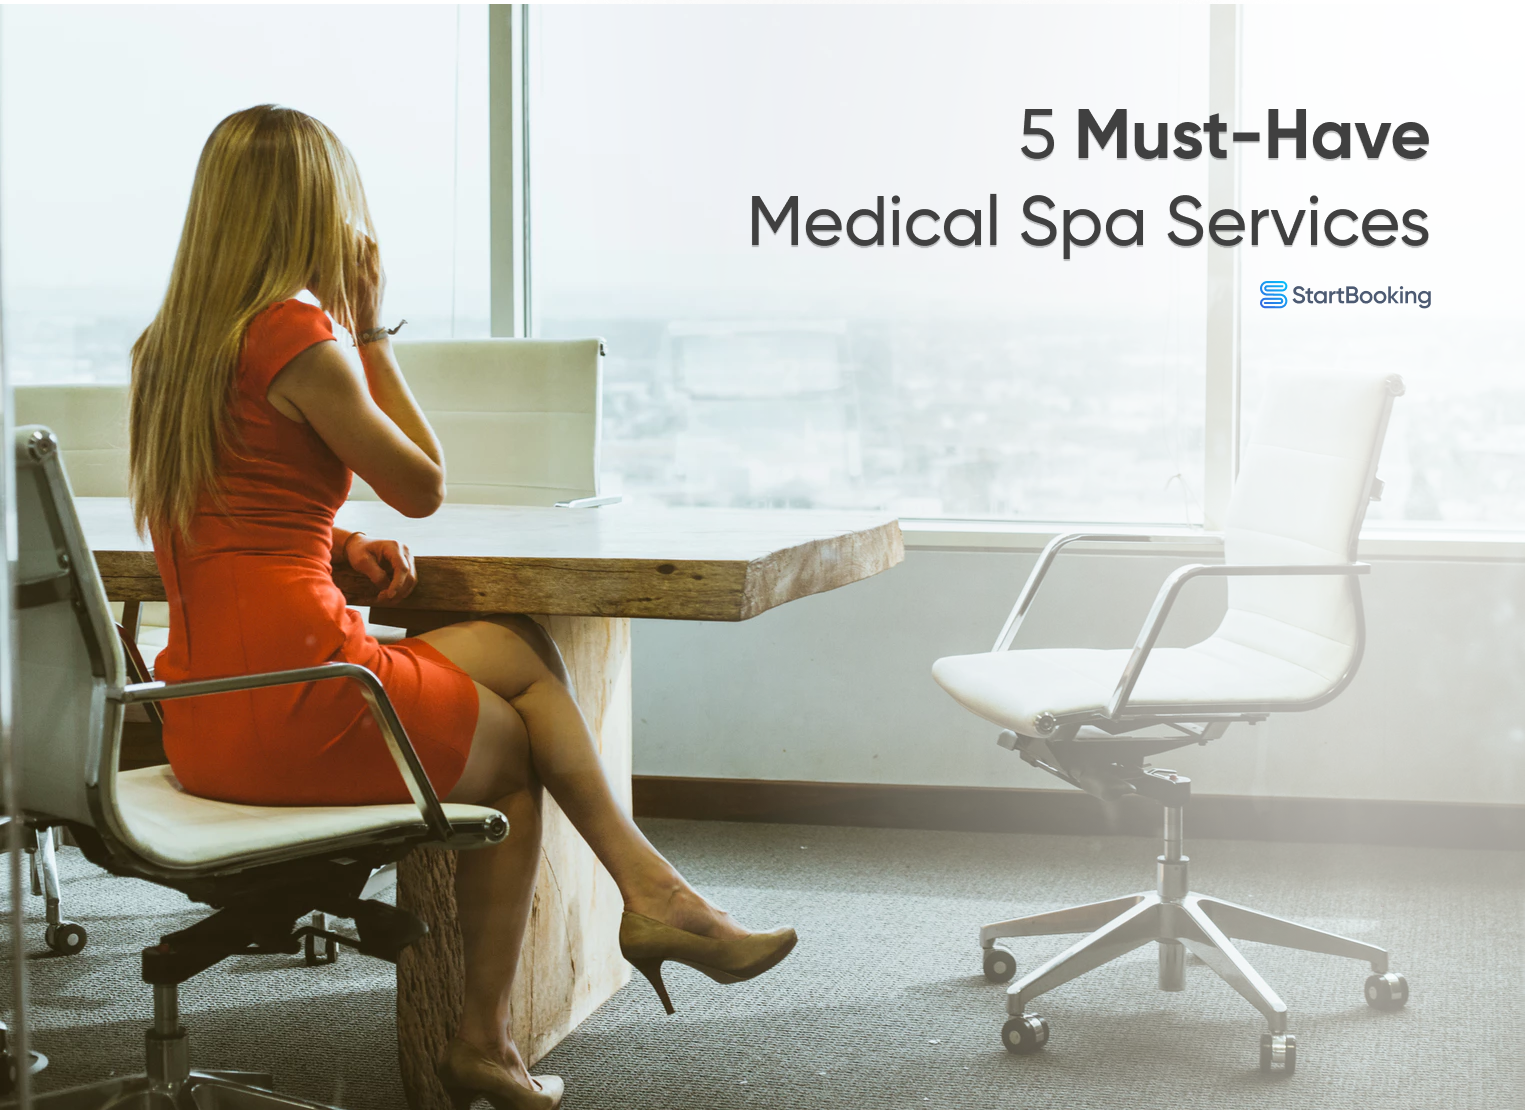 According to the American Med Spa Association (AmSpa), the rate at which medical spas are growing is 20% each year over the past five years. In fact, in the recently released AmSpa State of the Industry Report, medical spas are among the fastest growing industries in the nation. It's critical that you are promoting the […]